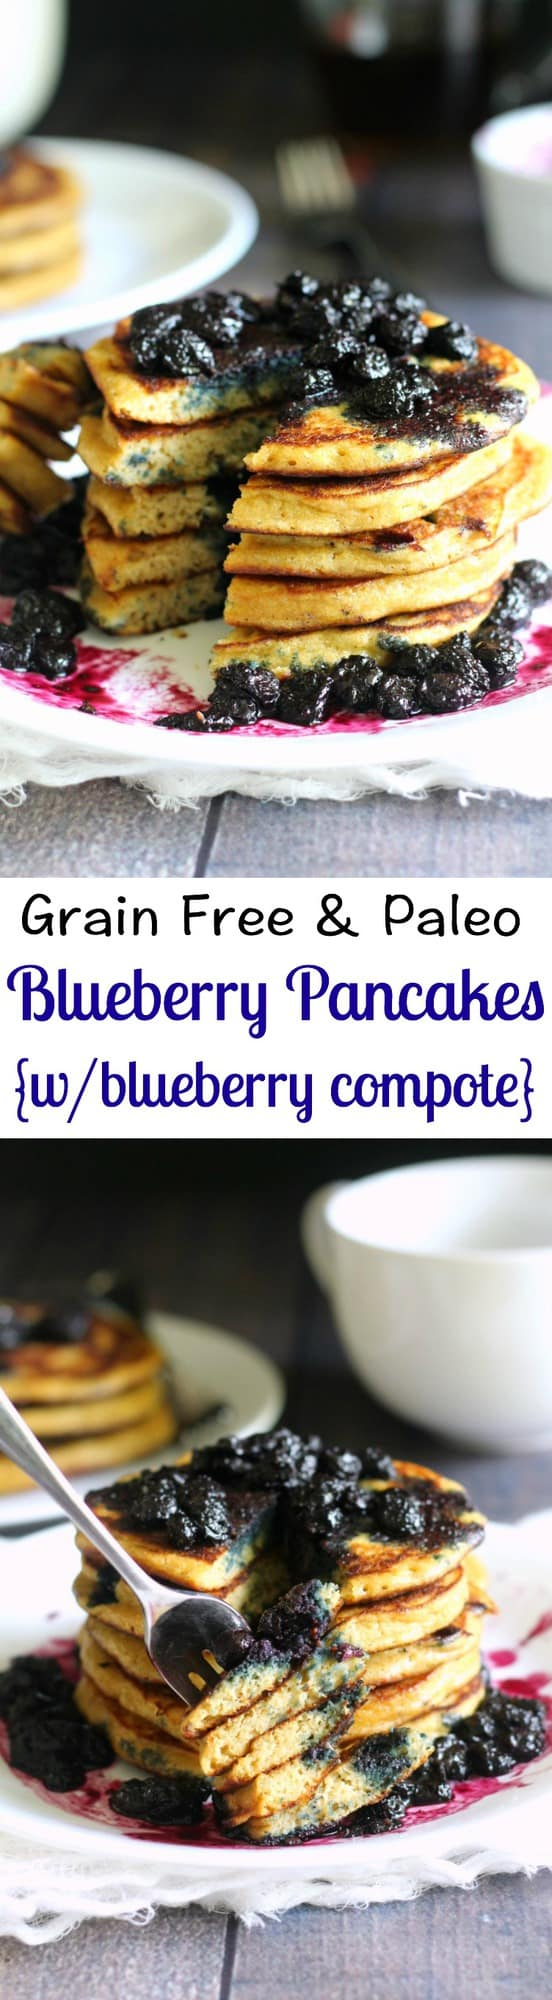 Grain free and Paleo blueberry pancakes with blueberry compote